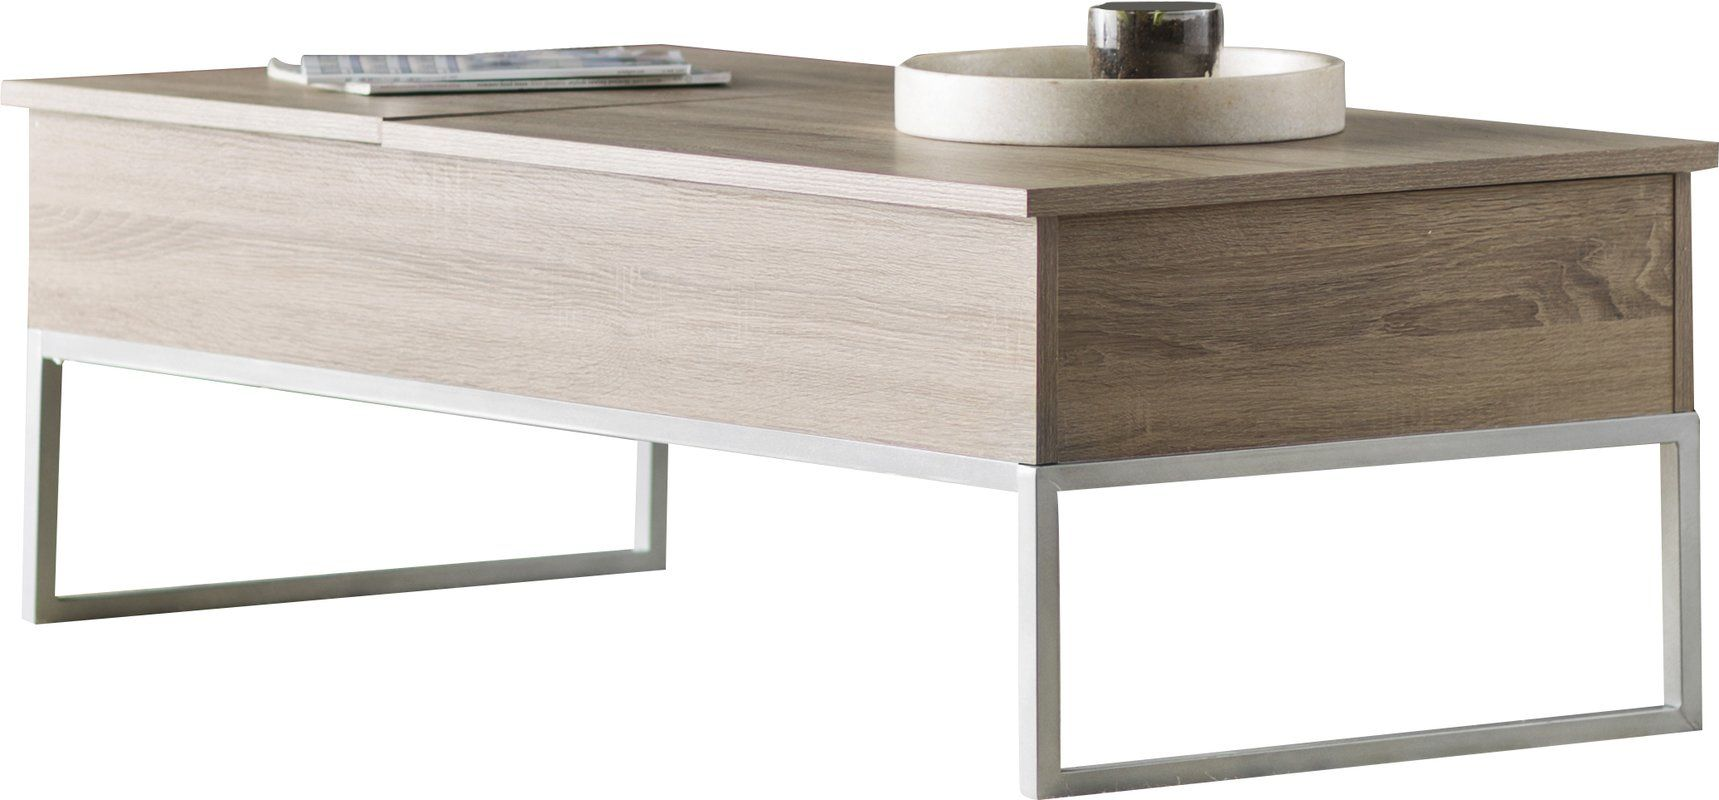 Pettis Lift Top Sled Coffee Table Lift Top Coffee Table Coffee Table Coffee Table With Storage